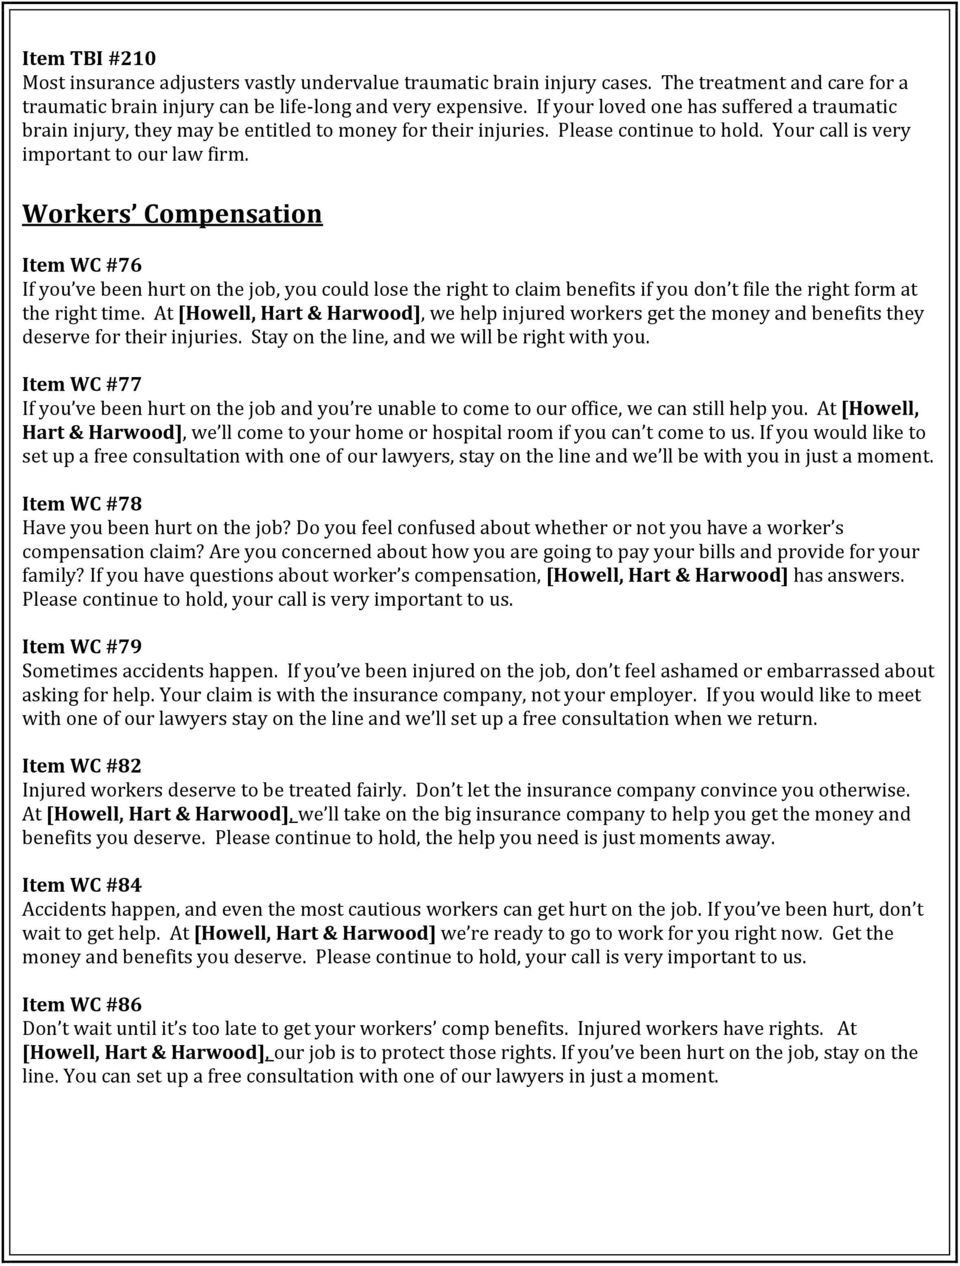 Workers Compensation Item WC #76 If you ve been hurt on the job, you could lose the right to claim benefits if you don t file the right form at the right time.